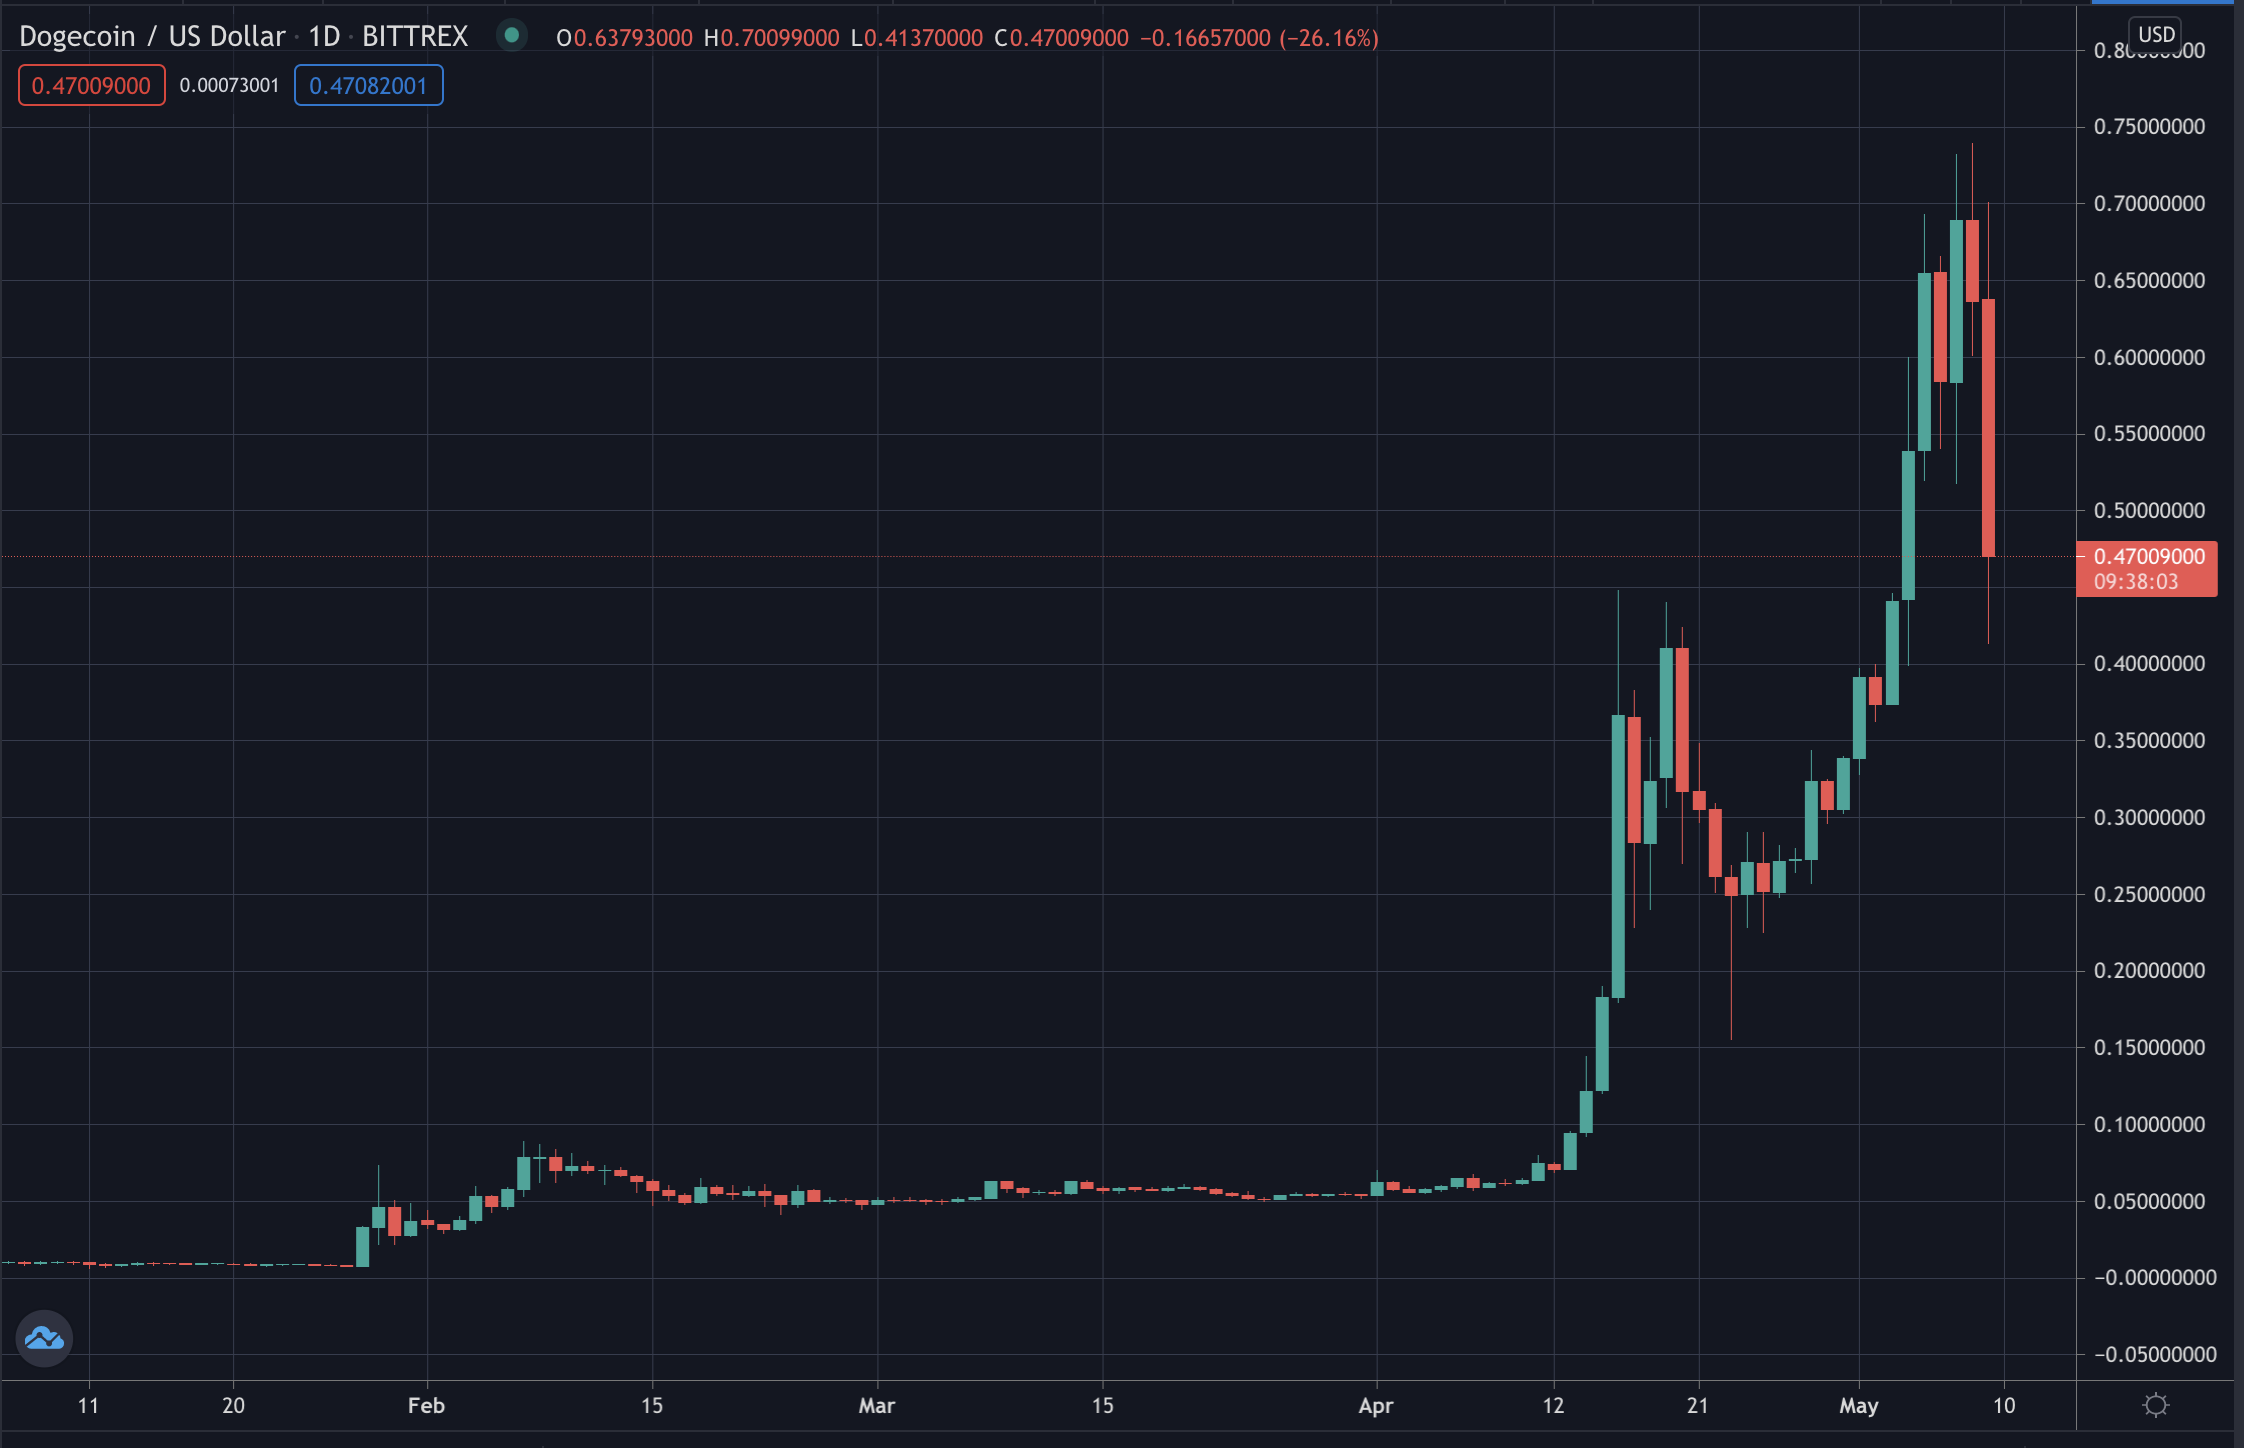 Dogecoin price, May 2021